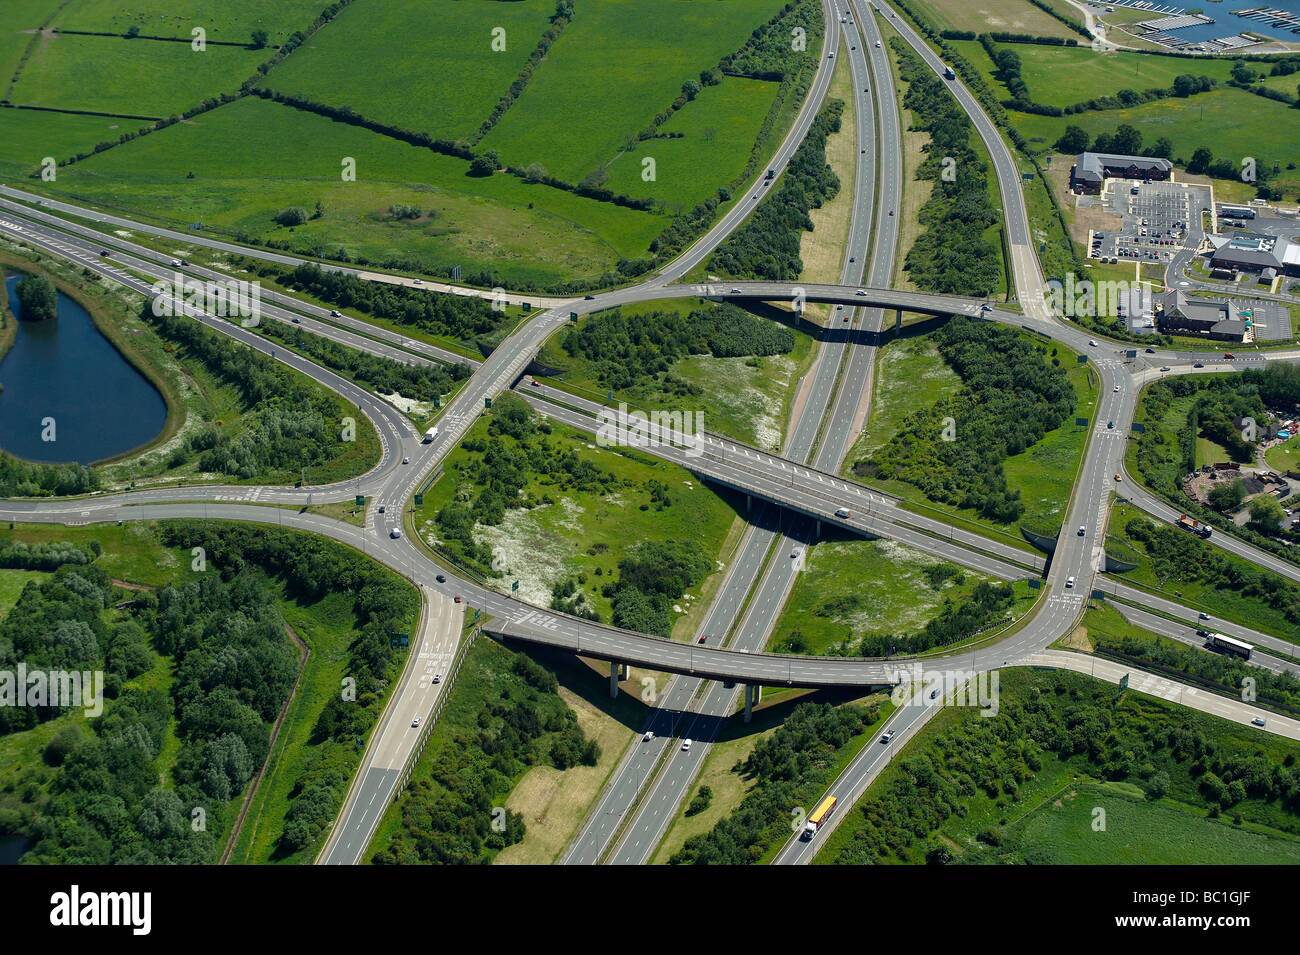 Trunk Road intersection, A38/A50 south of Derby, East Midlands, UK - Stock Image